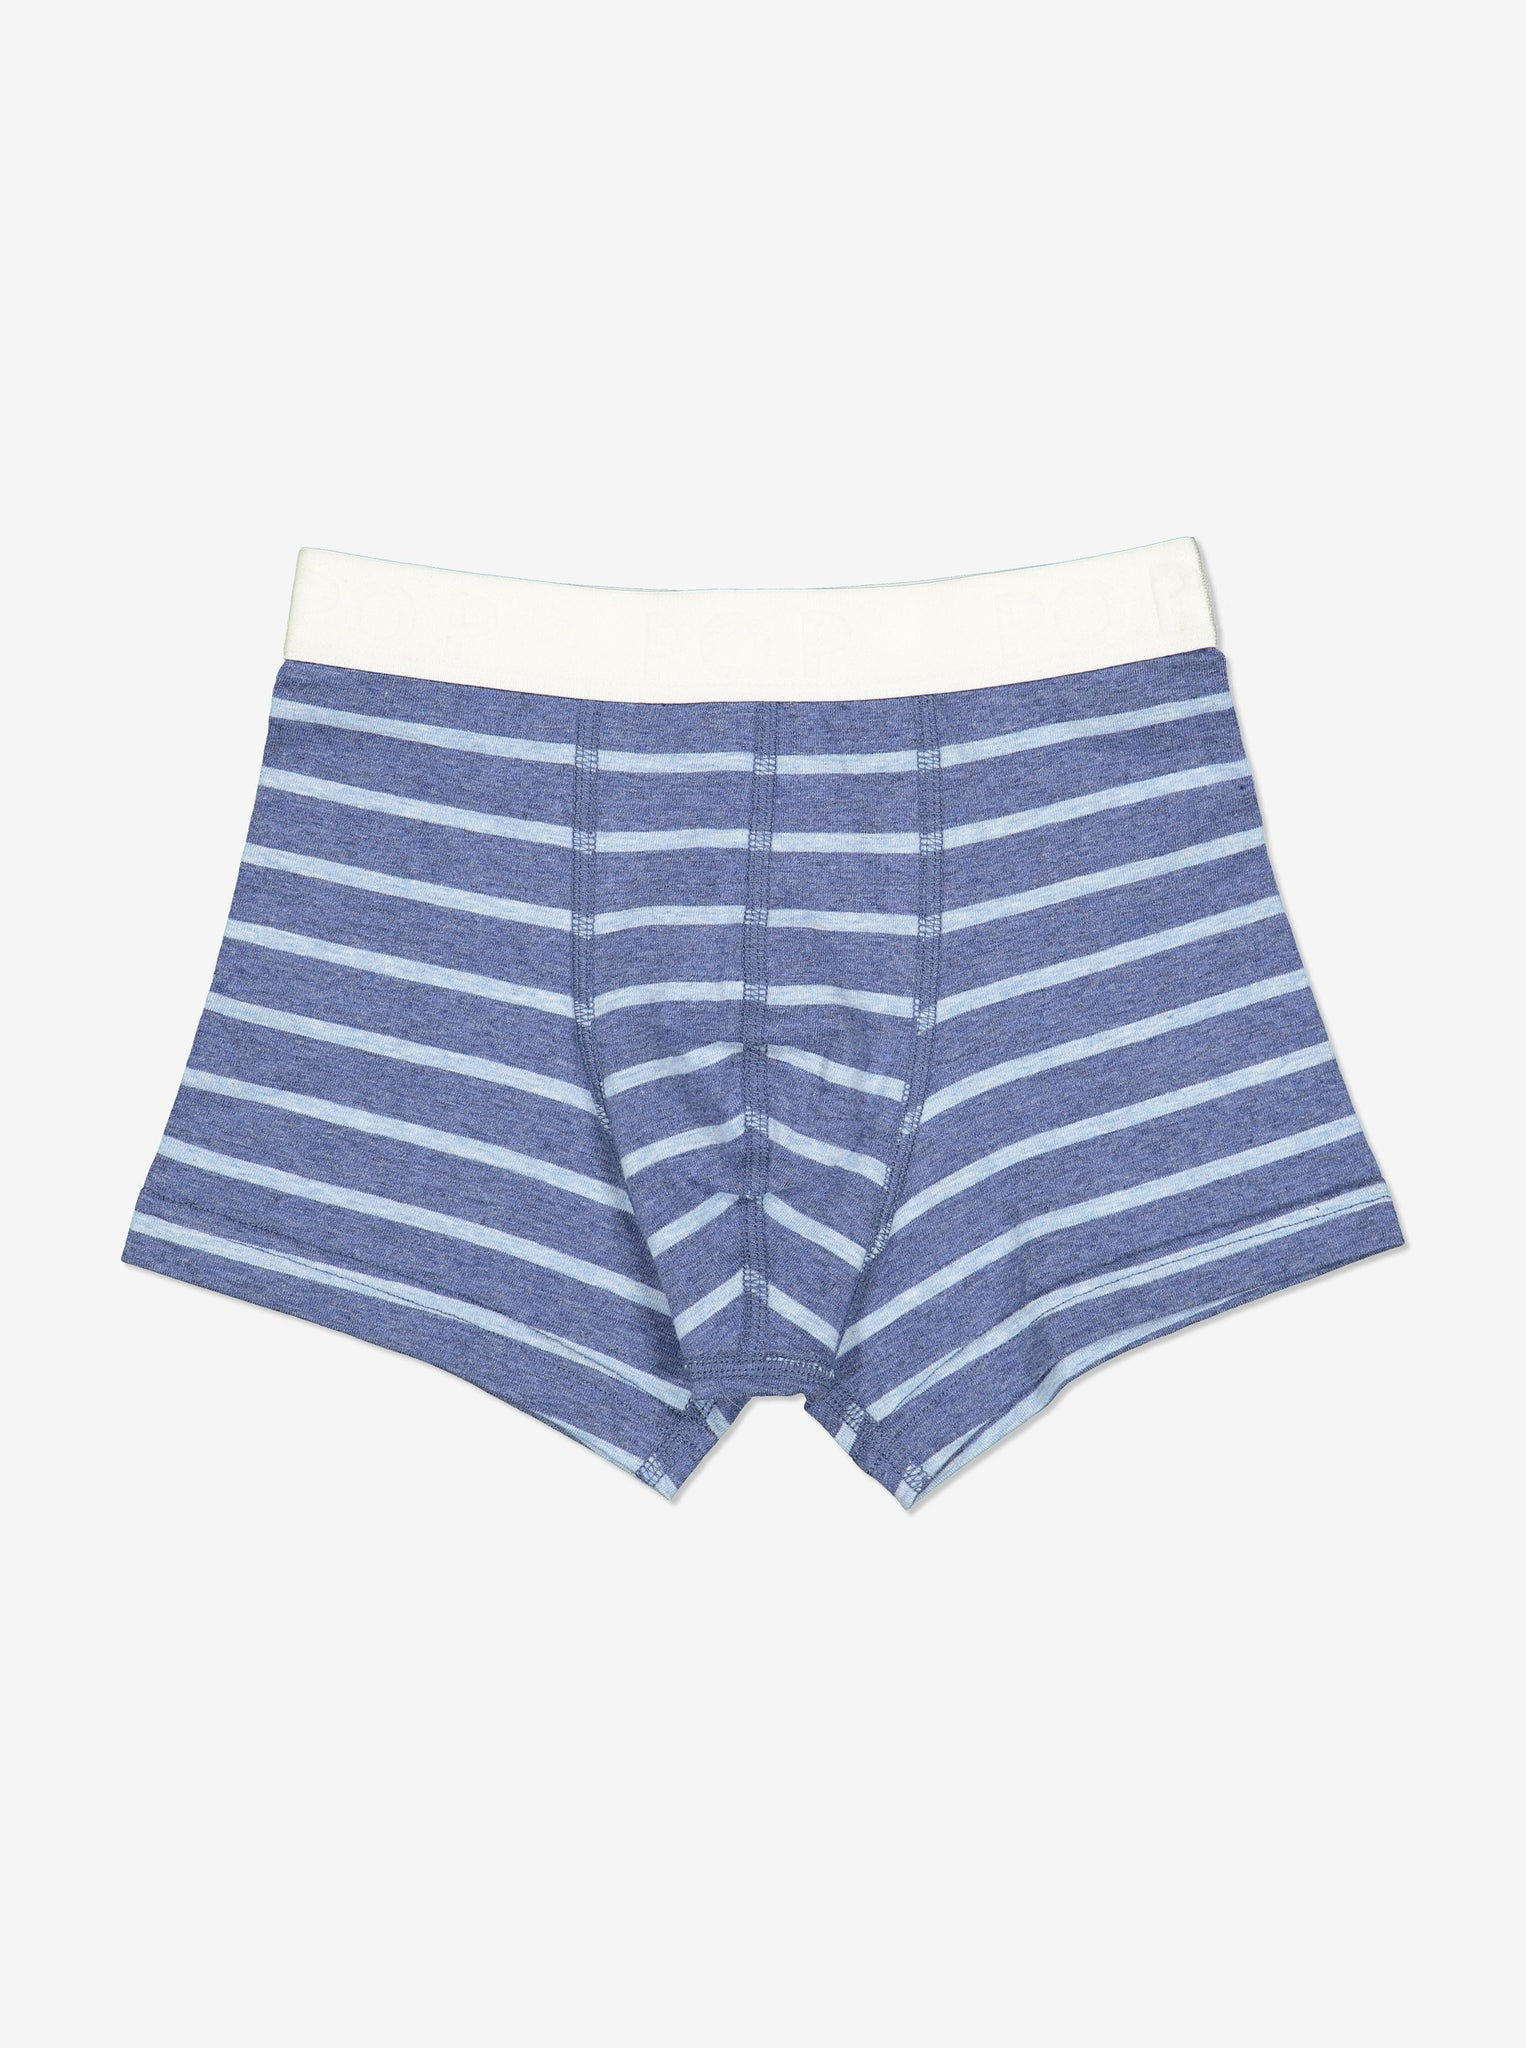 Striped Boys Boxers-Boy-1-12y-Blue